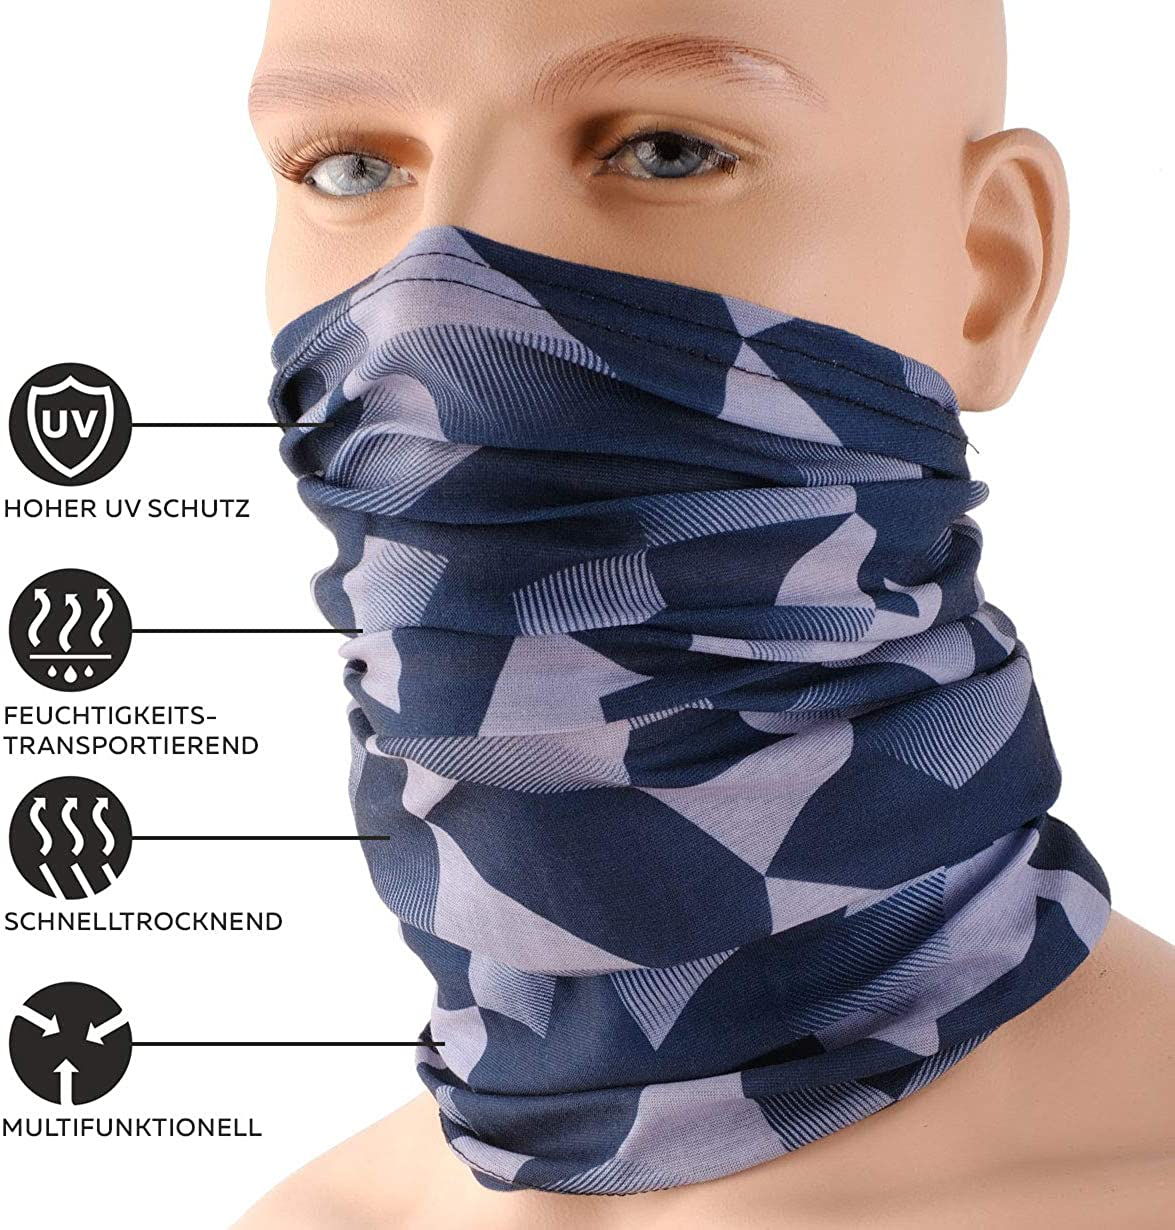 bandana for men and women multifunctional scarf tubular scarf HILLTOP motorcycle neckerchief shawl edges of the hem are sewn